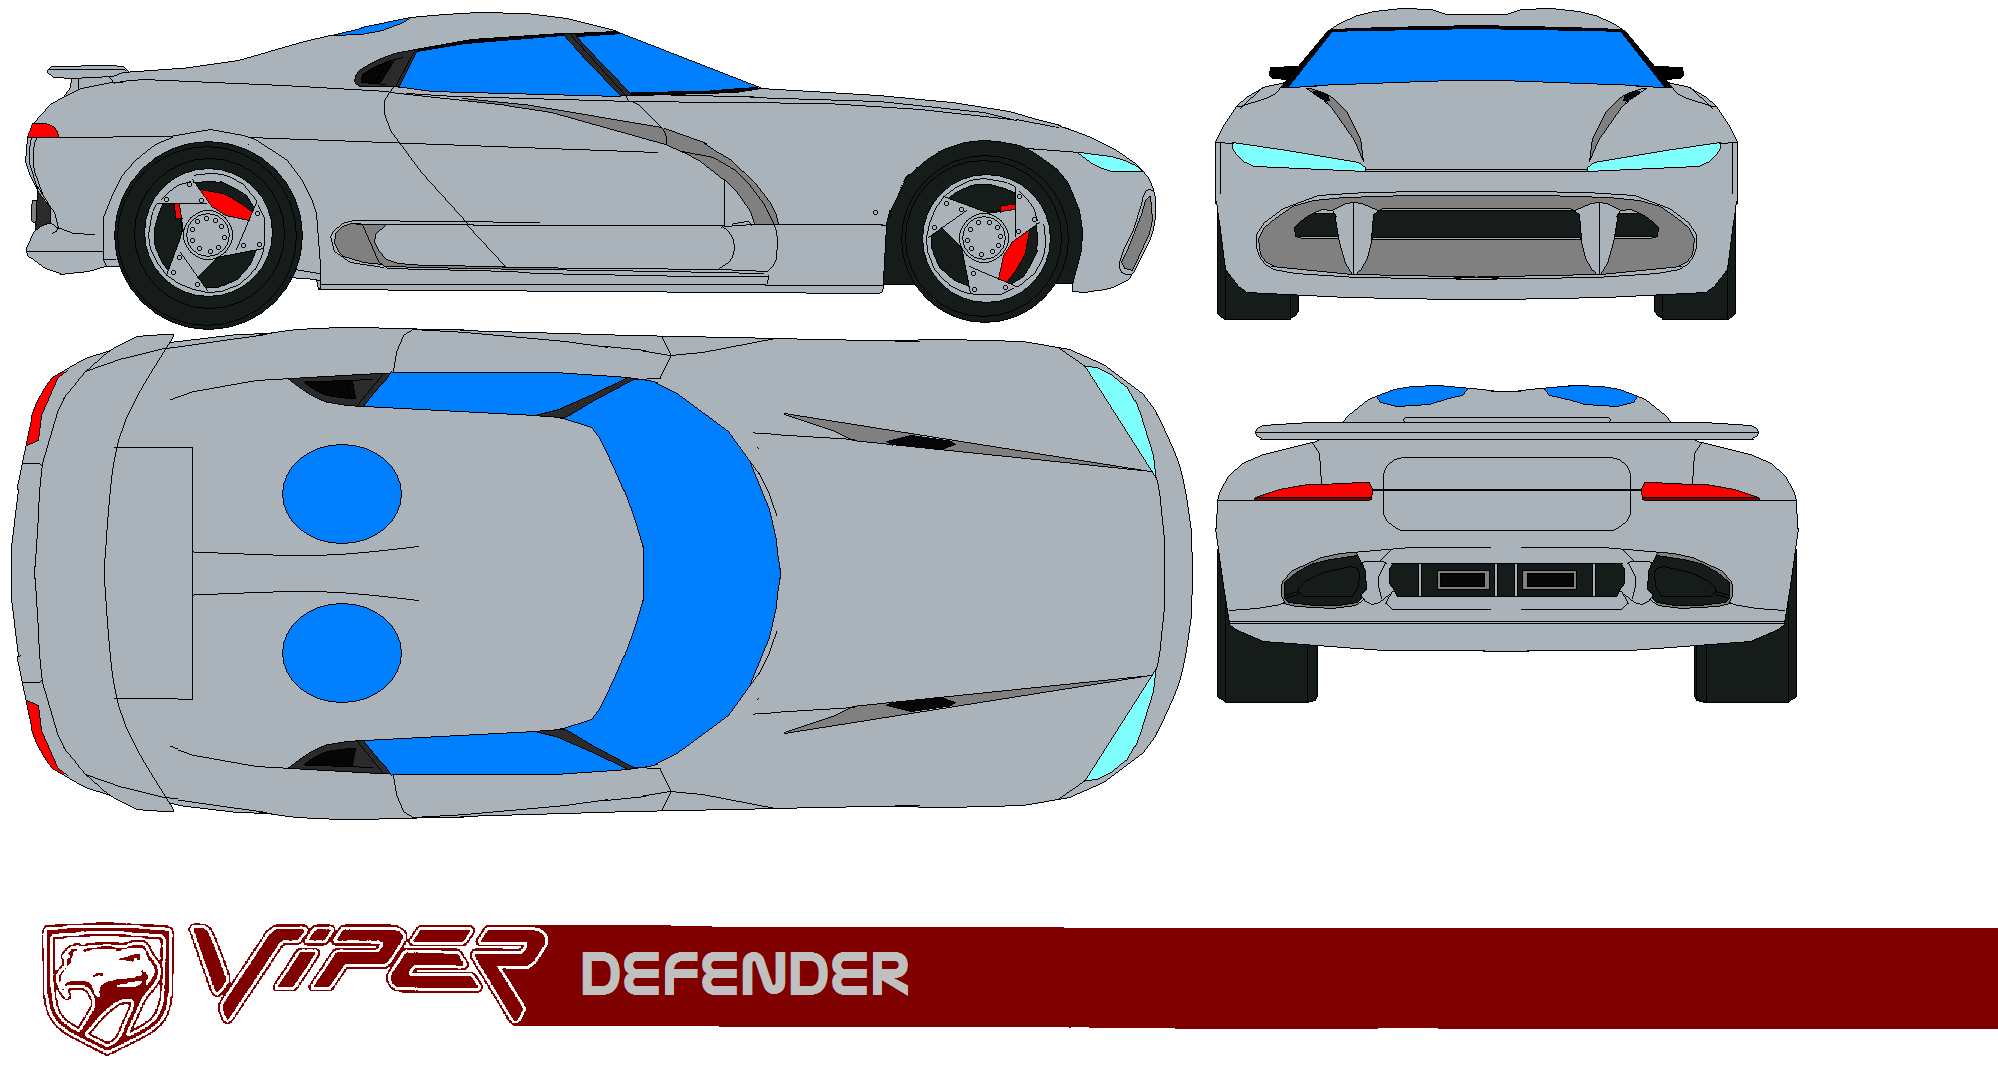 Photos Of Dodge Viper Defender Photo Tuning Dodge Viper Defender 04 Jpg Gr8autophoto Com